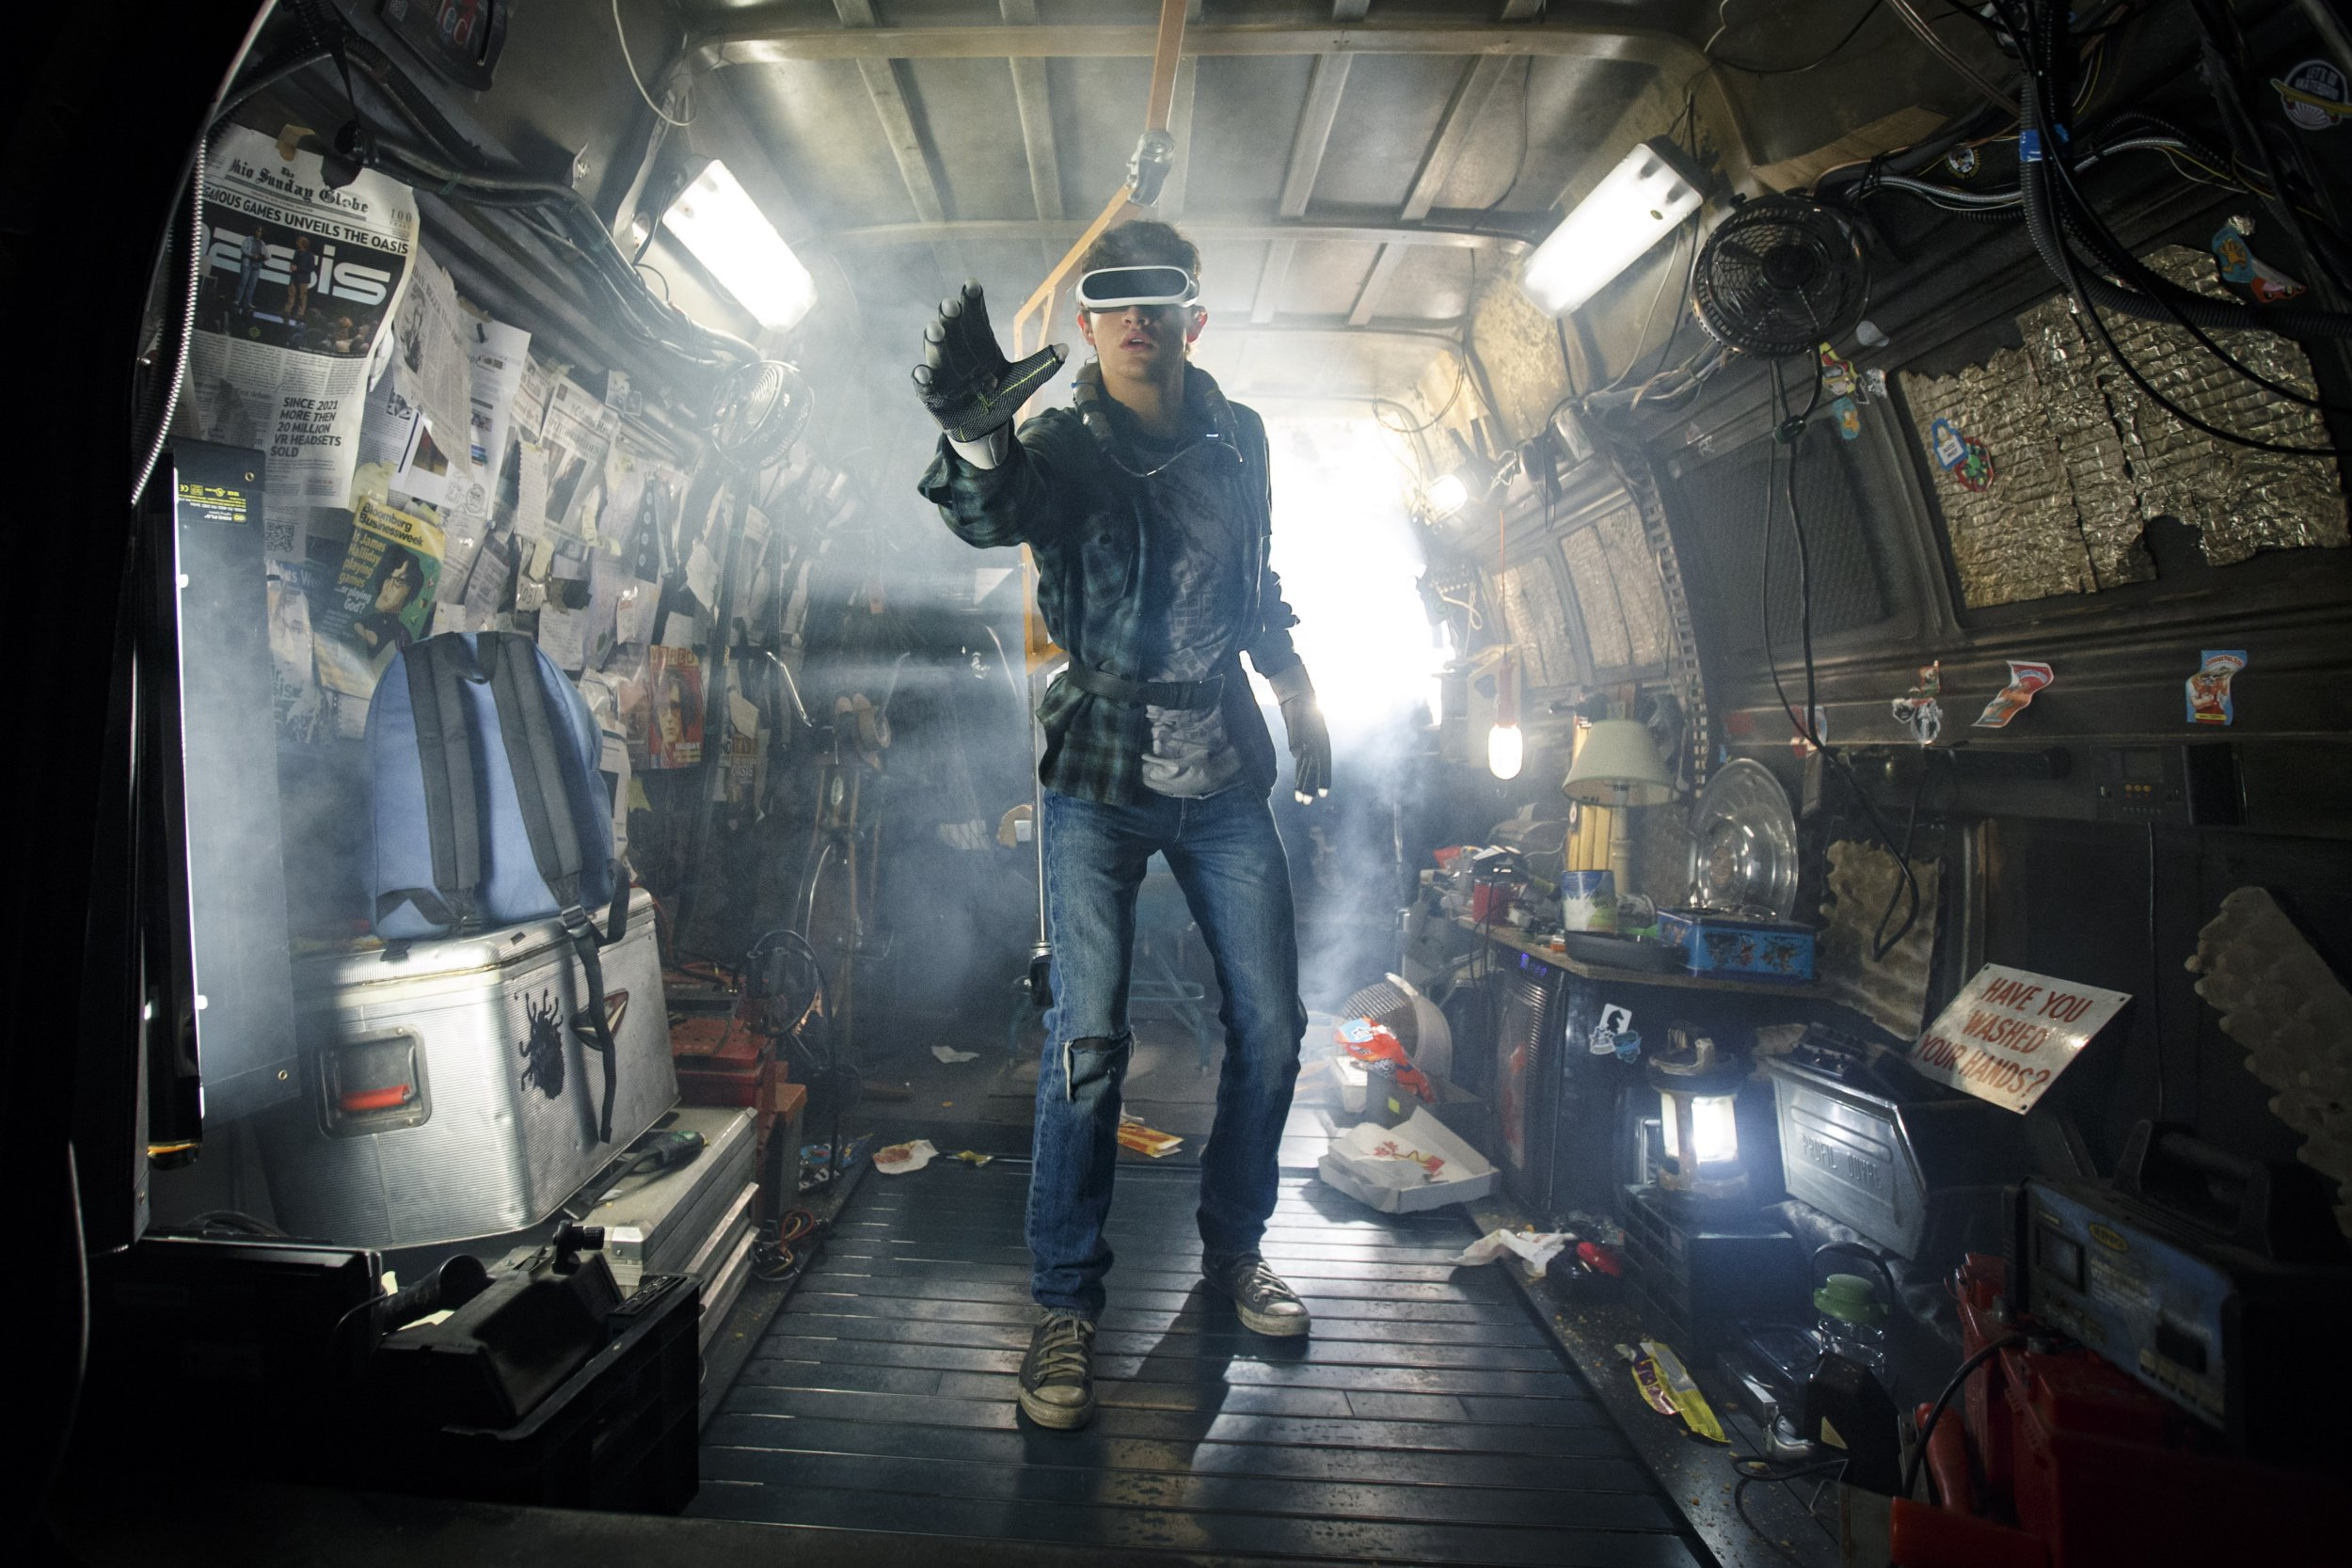 Is Ready Player One Spielberg's last chance?